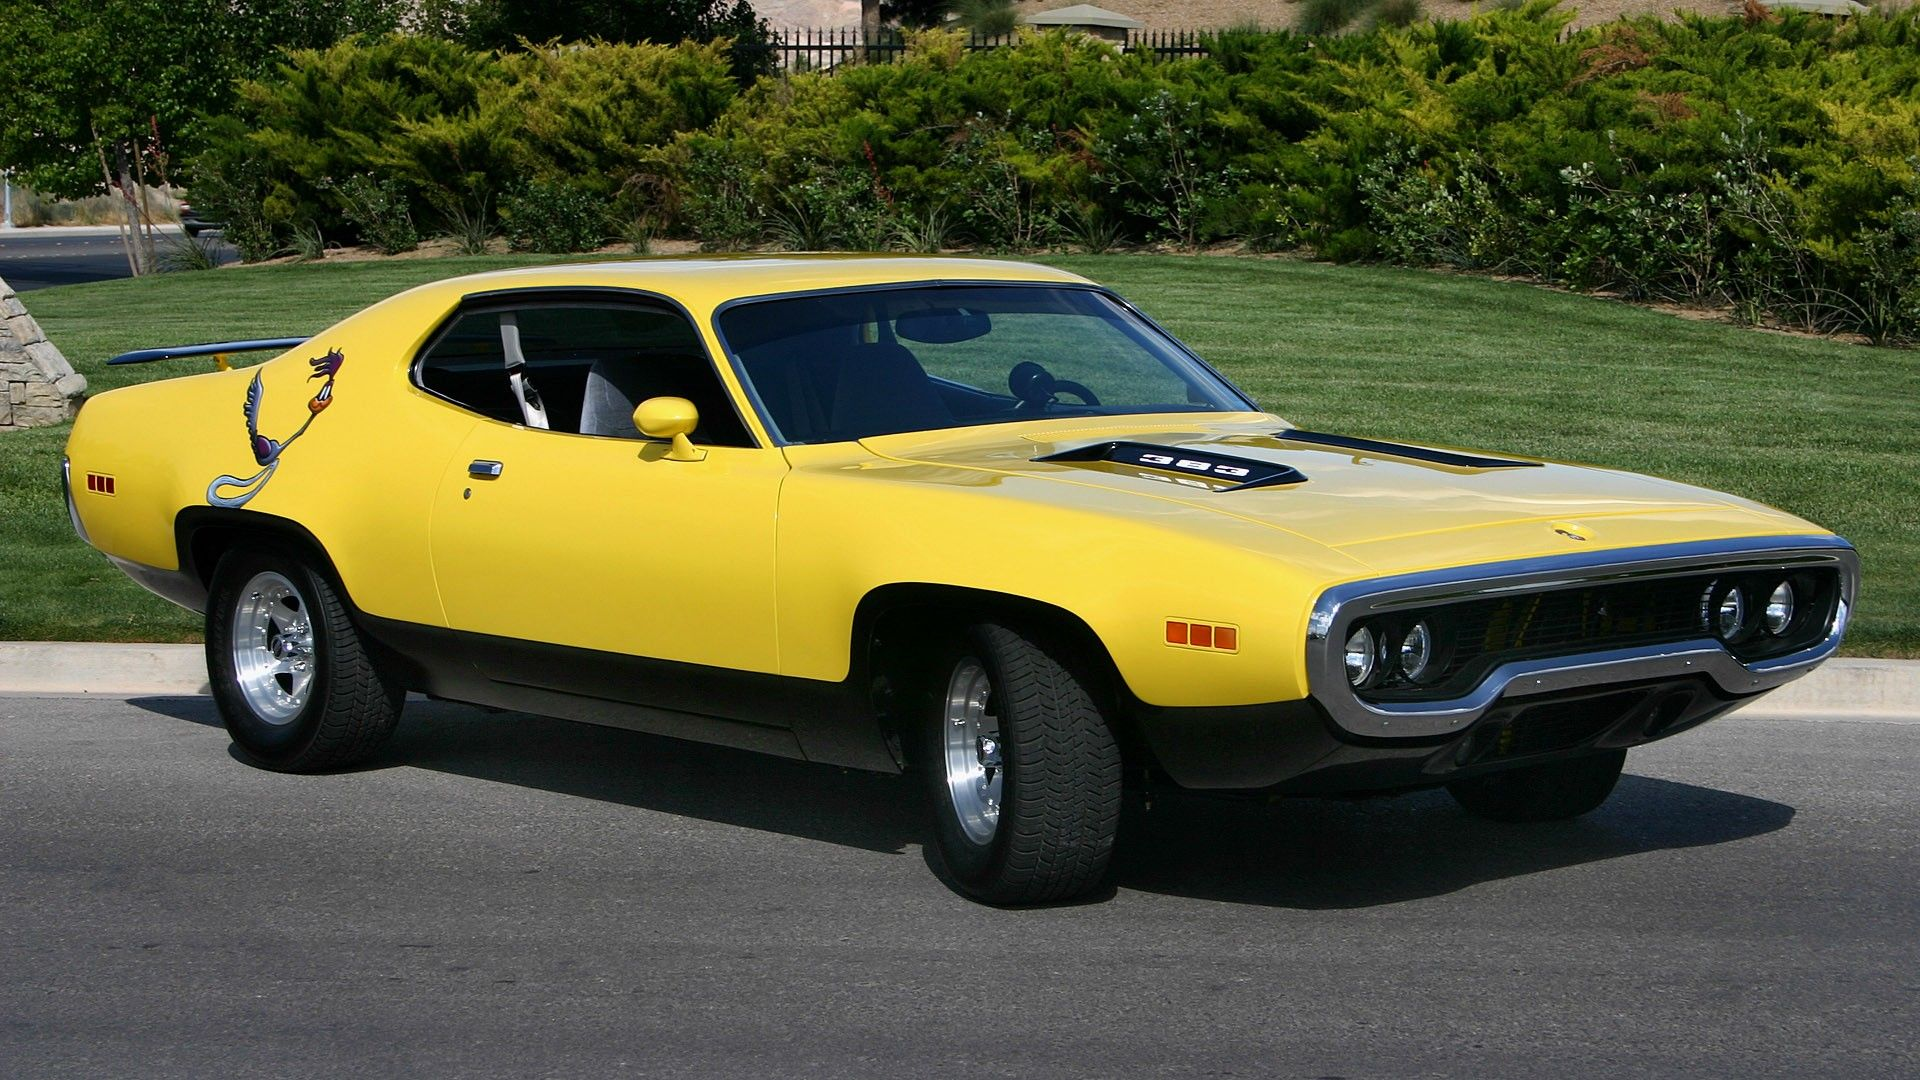 cars Plymouth 1973 roadrunner automotive muscle car - Wallpaper ...